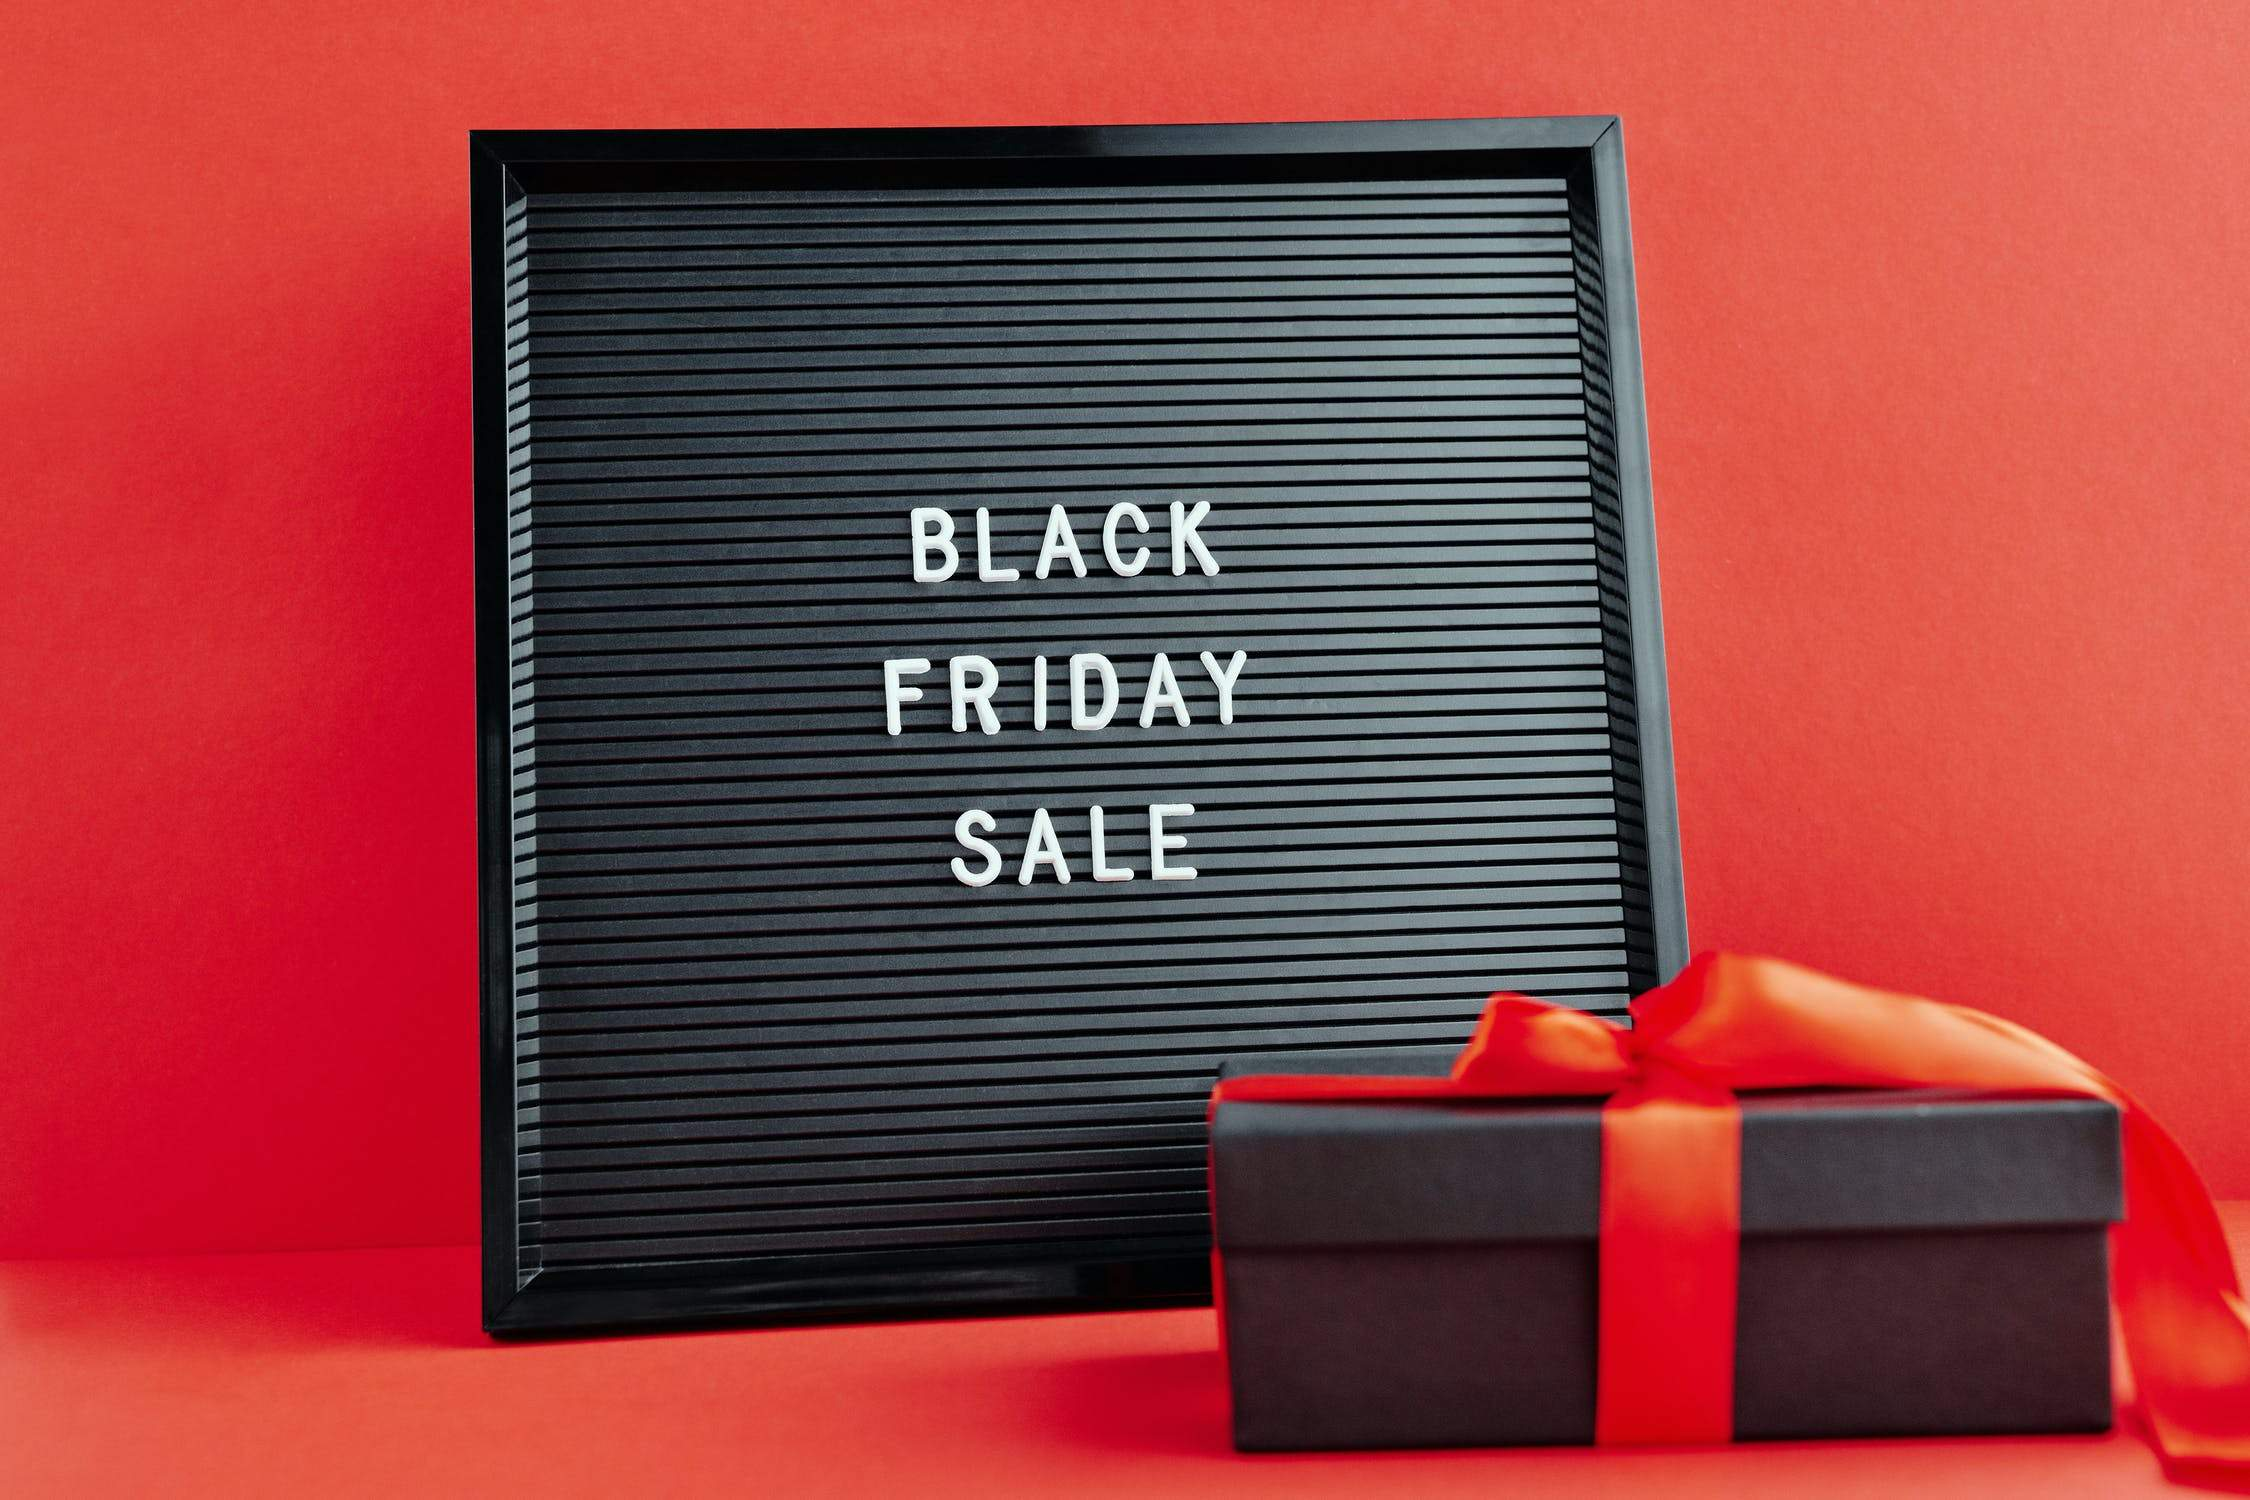 black friday deals, sales, 2020, yescomusa